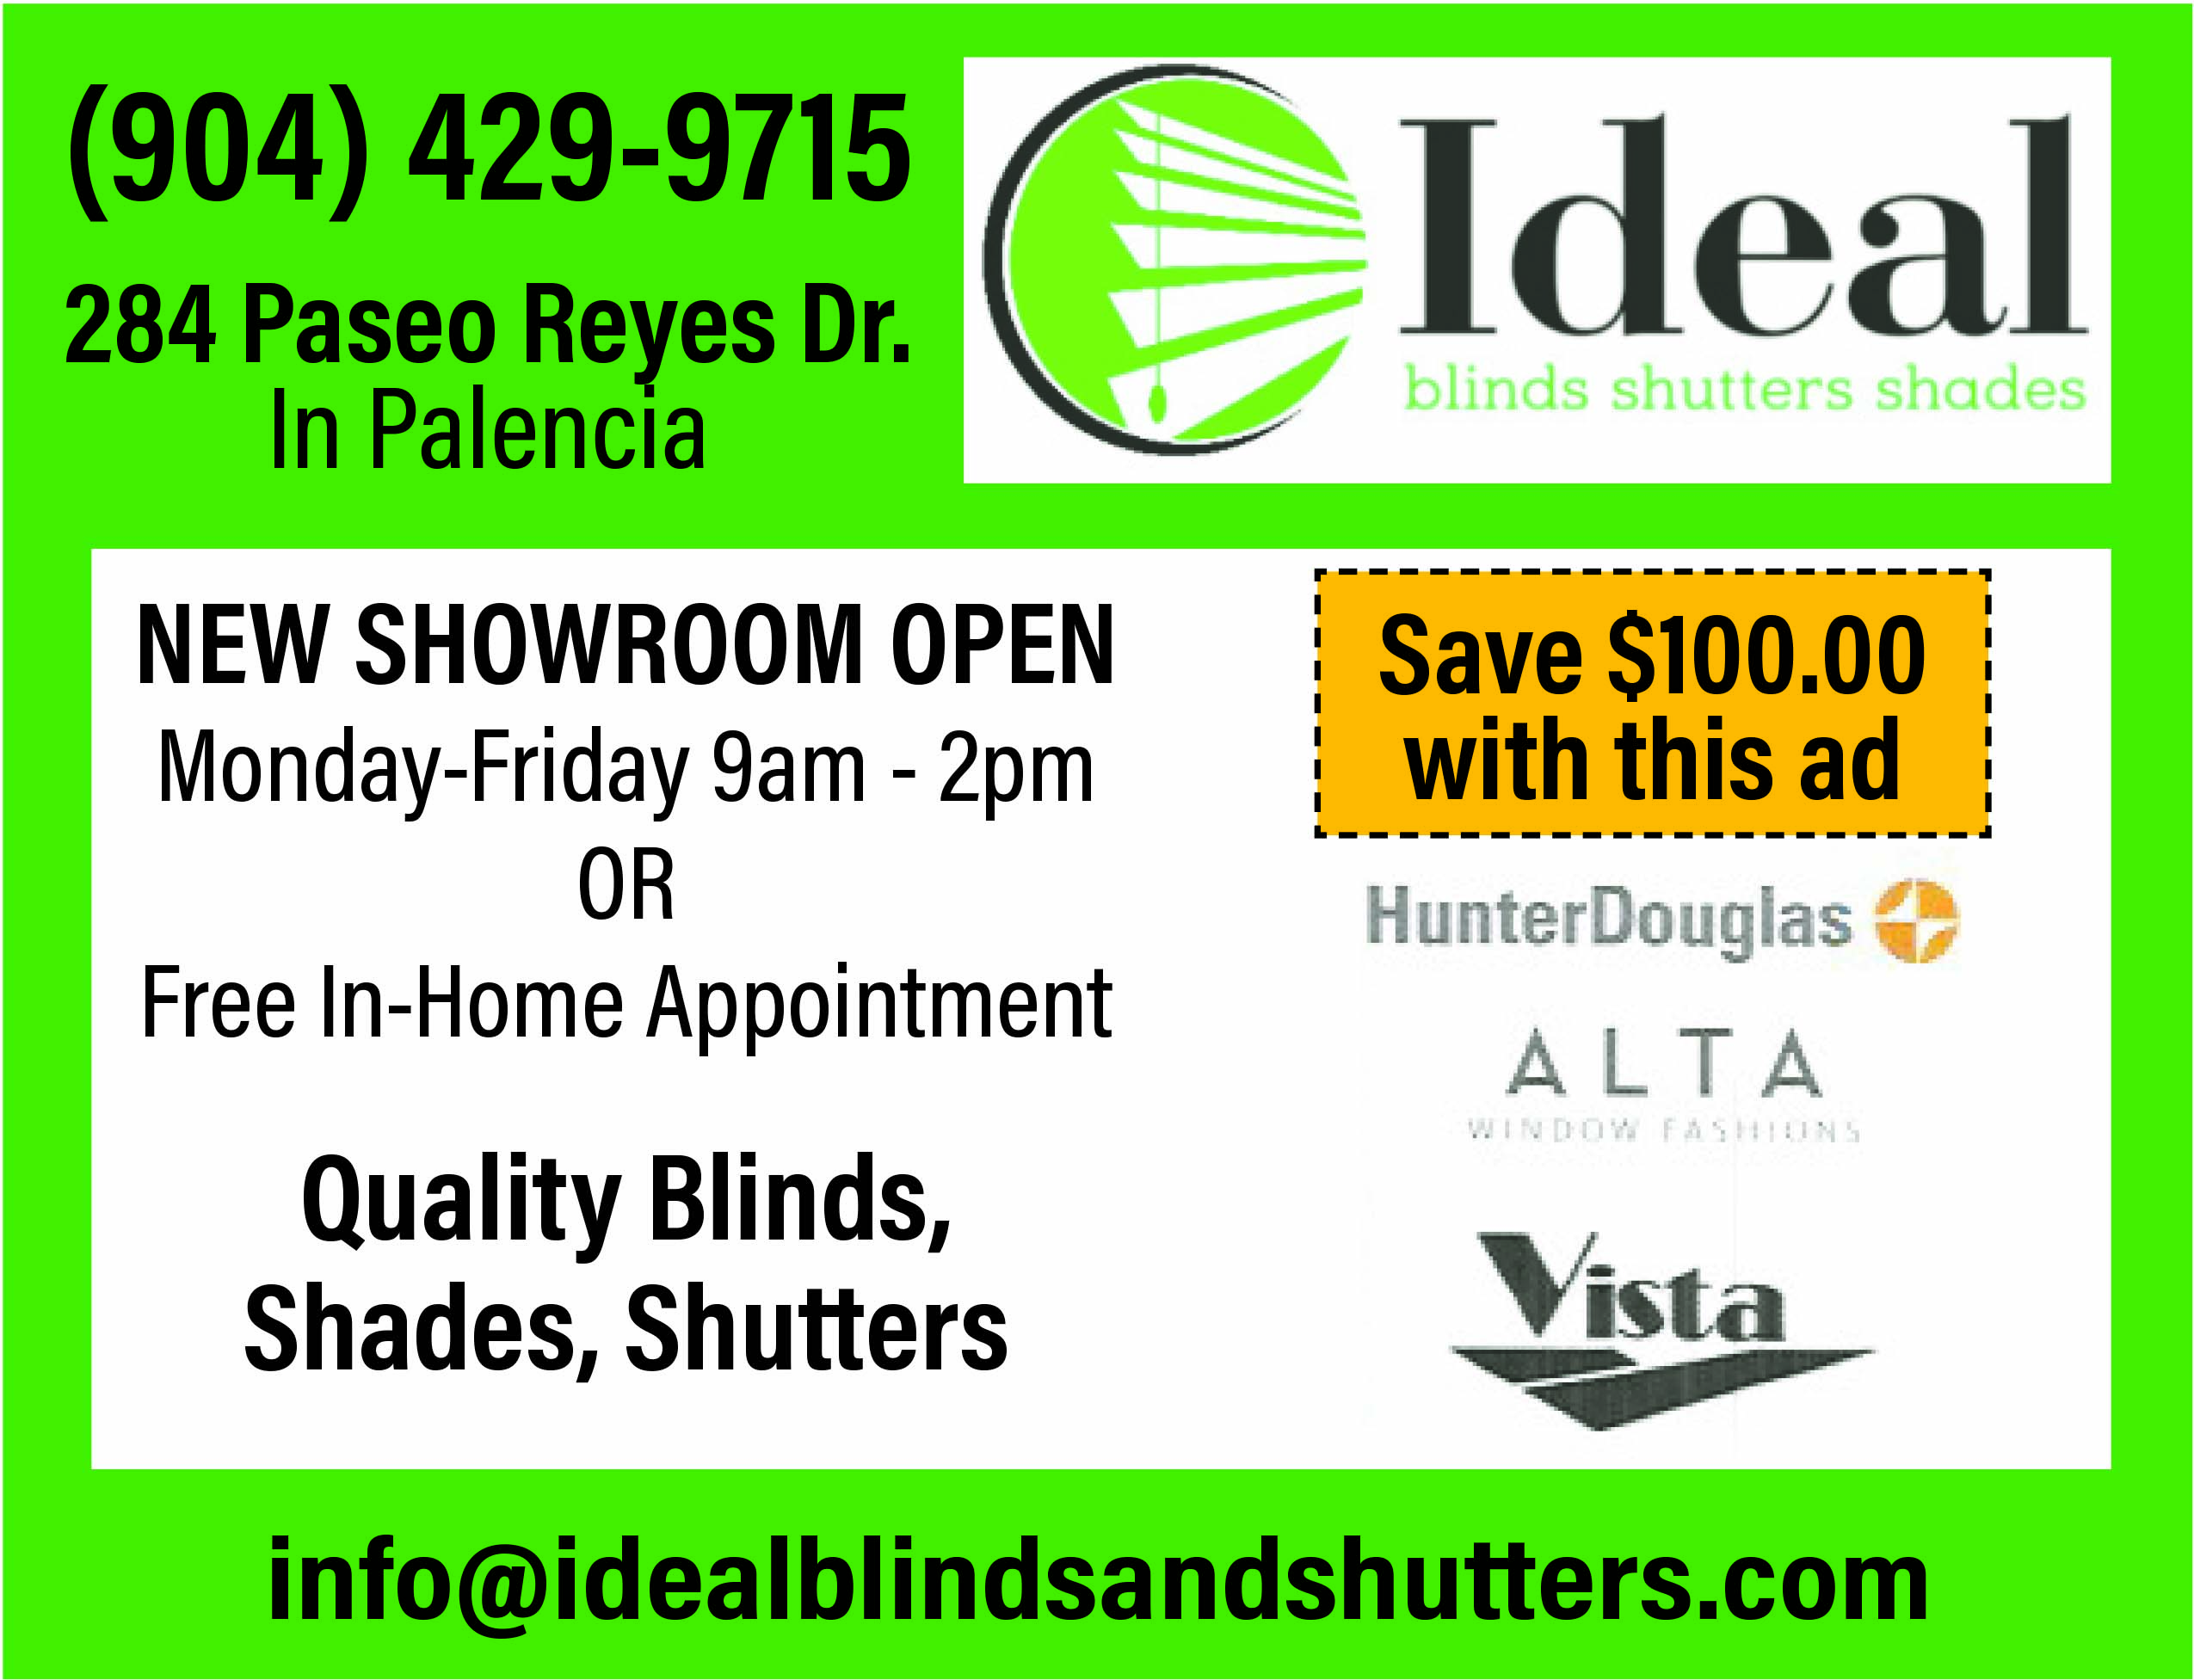 Ideal blinds shutters shade. Quality Blinds, shades, shutters